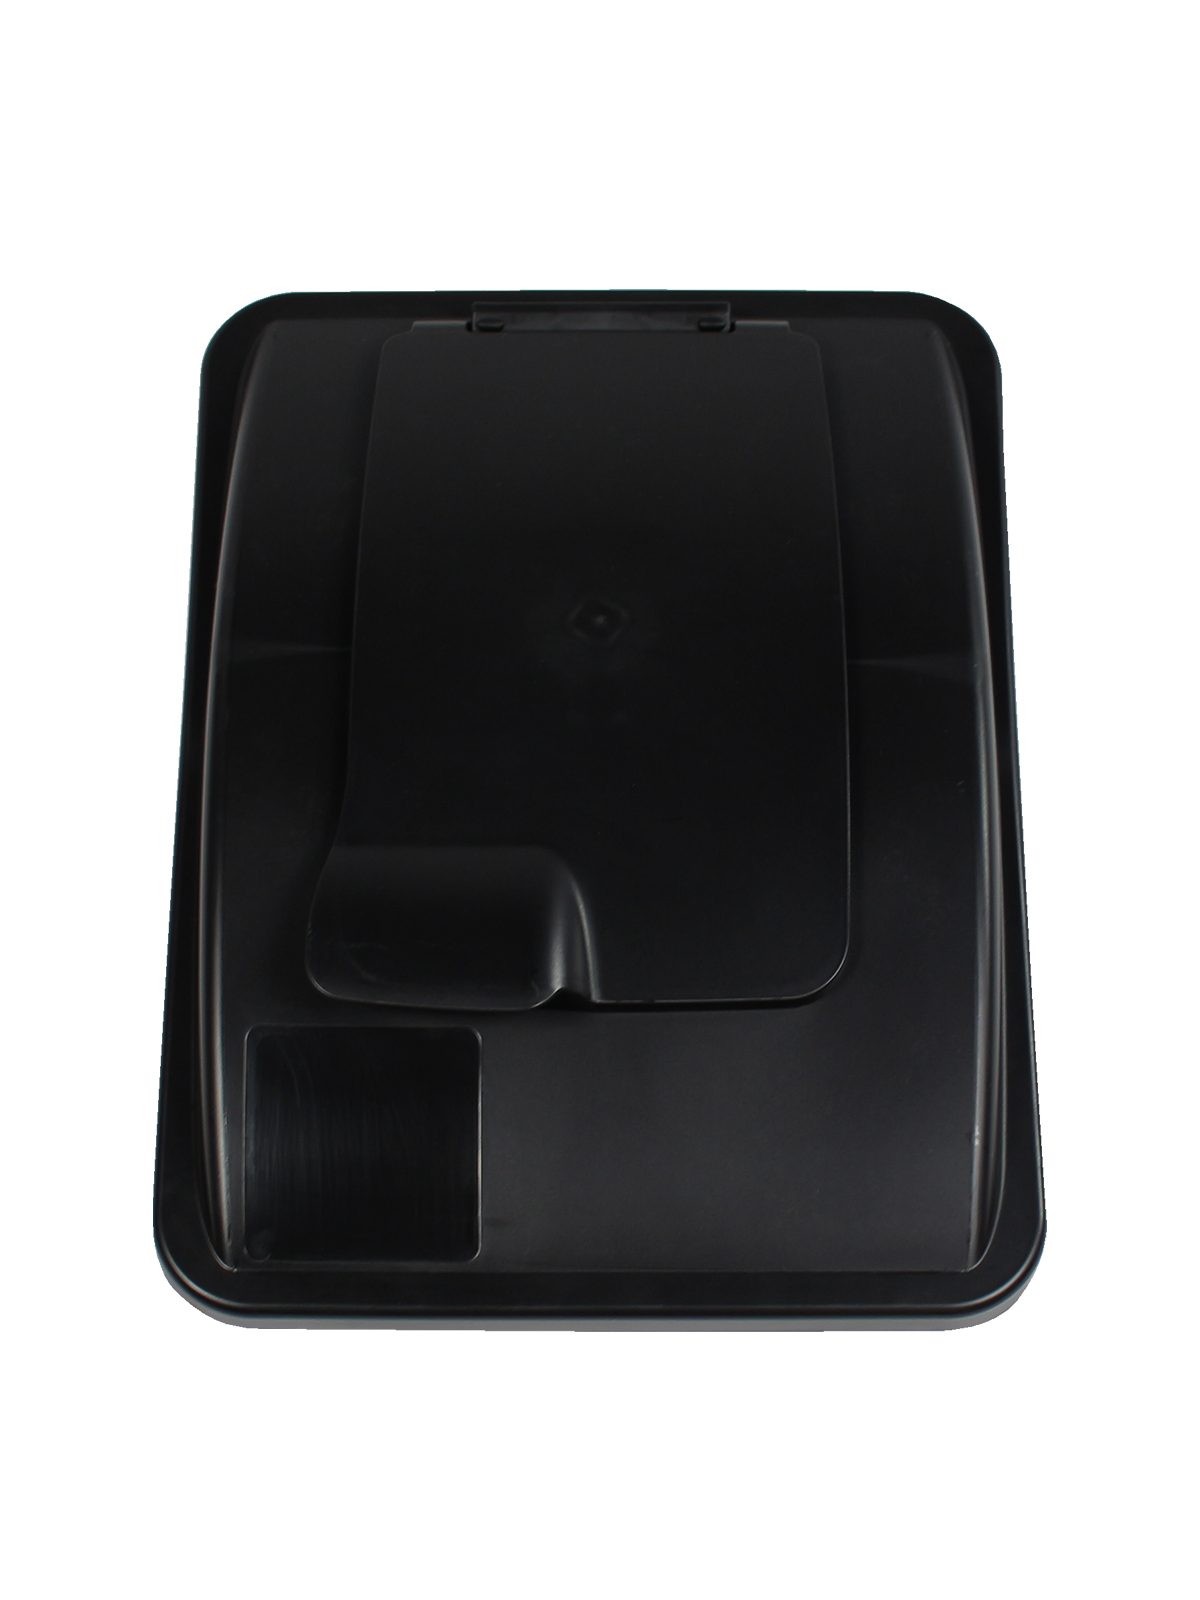 WASTE WATCHER® XL - LIFT LID - SOLID OPENING - BLACK title=